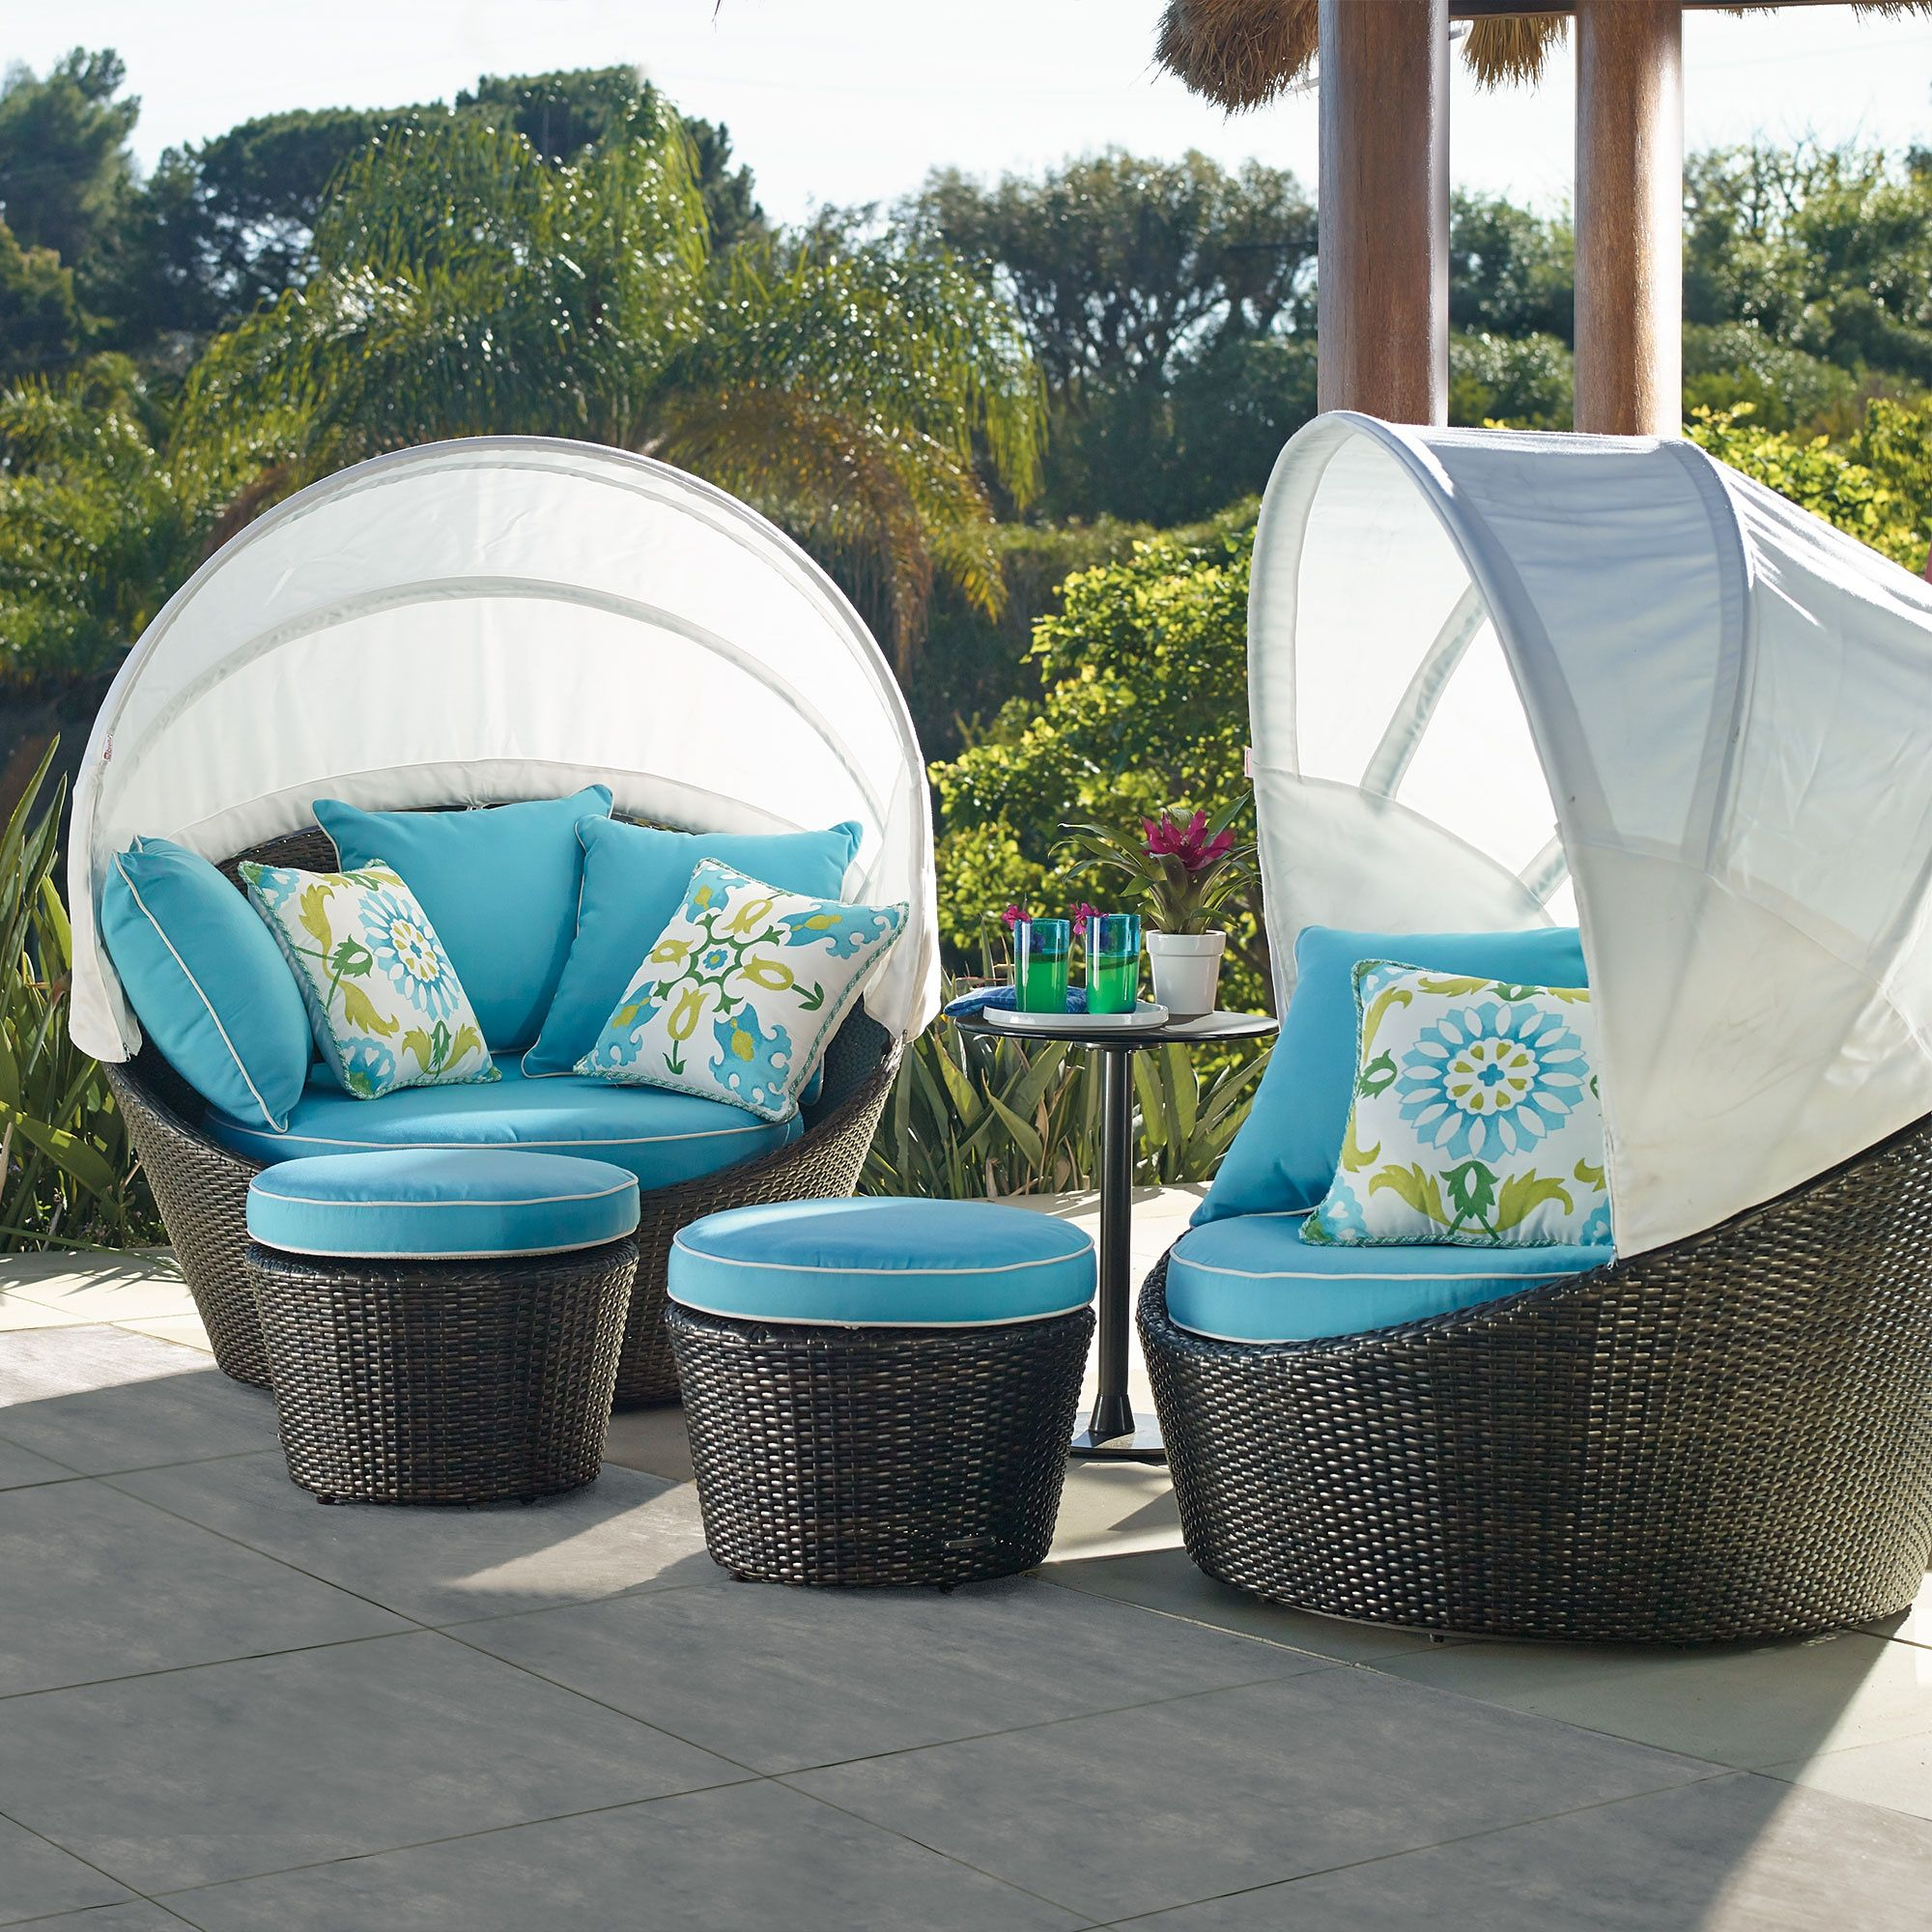 Relaxed Elegance Of Exotic Resort